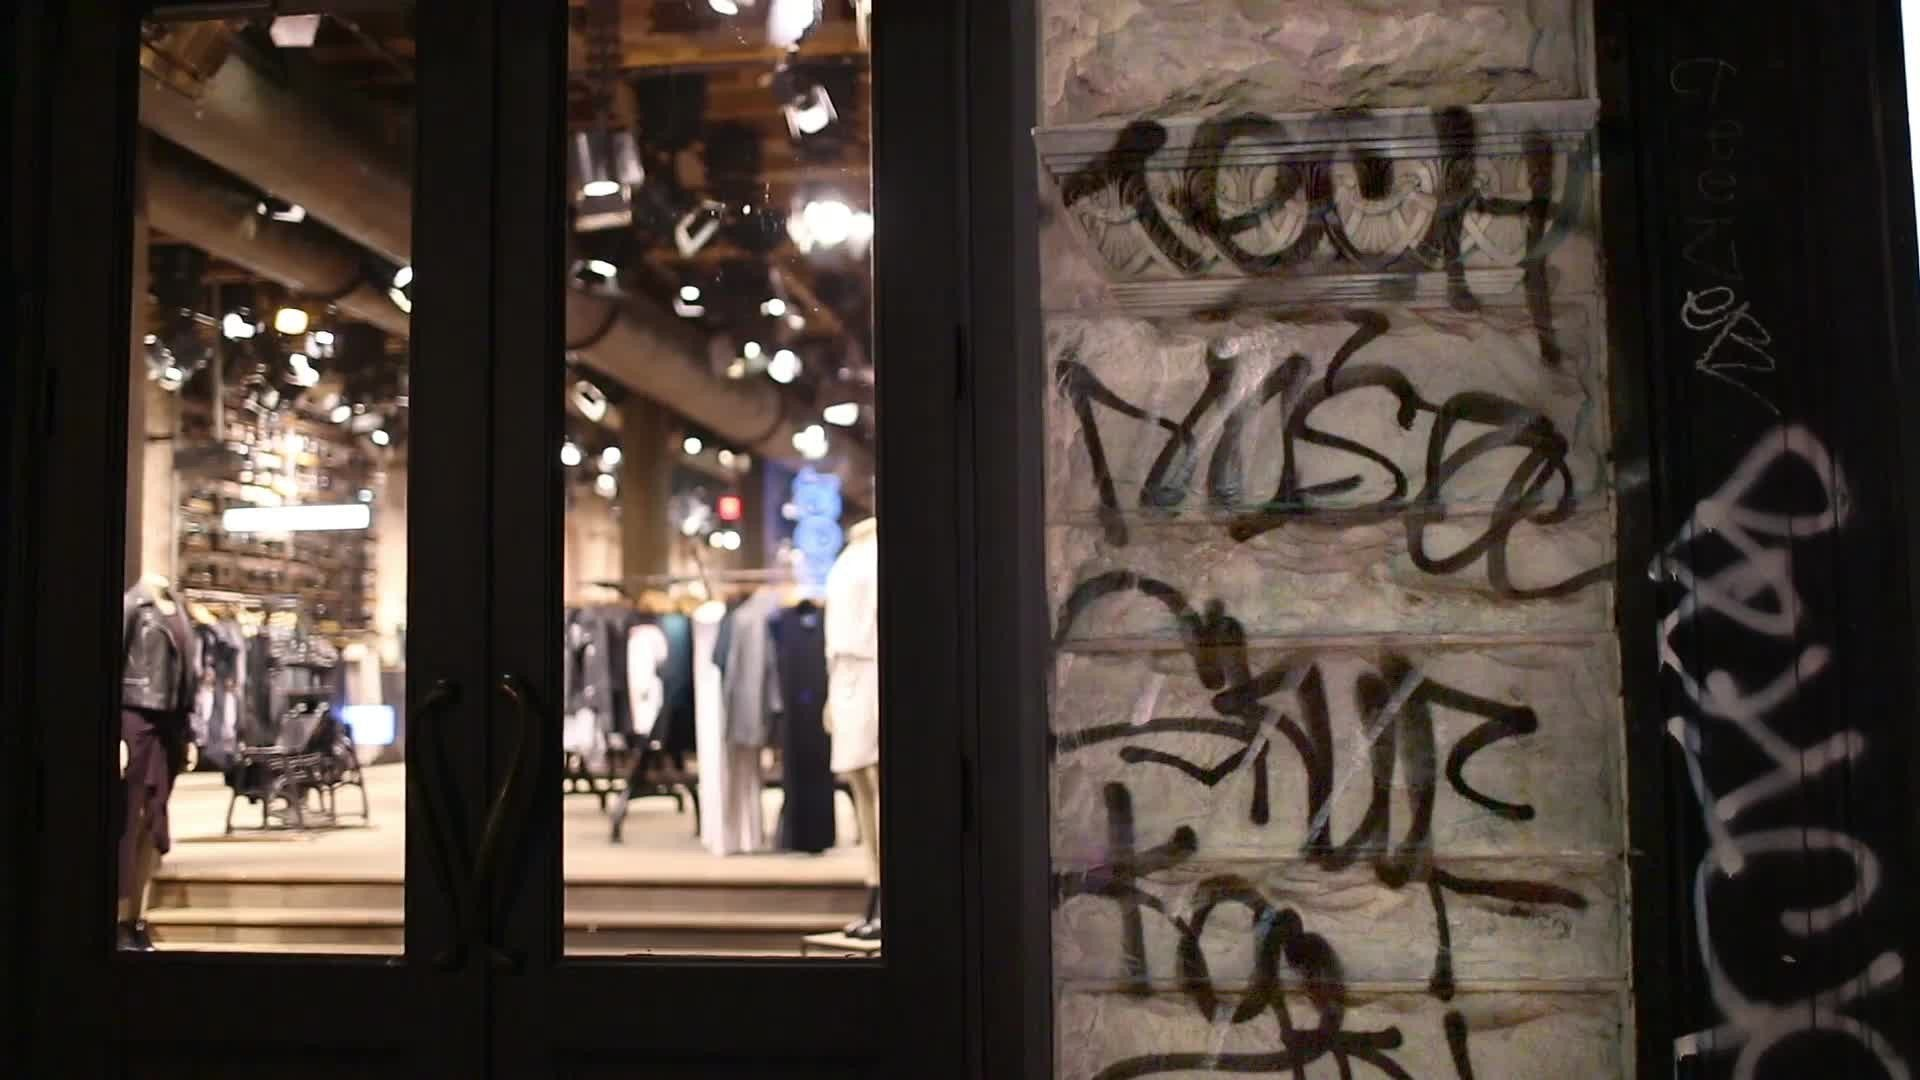 graffiti written on entrance of clothing store at night on Broadway with audio in NYC